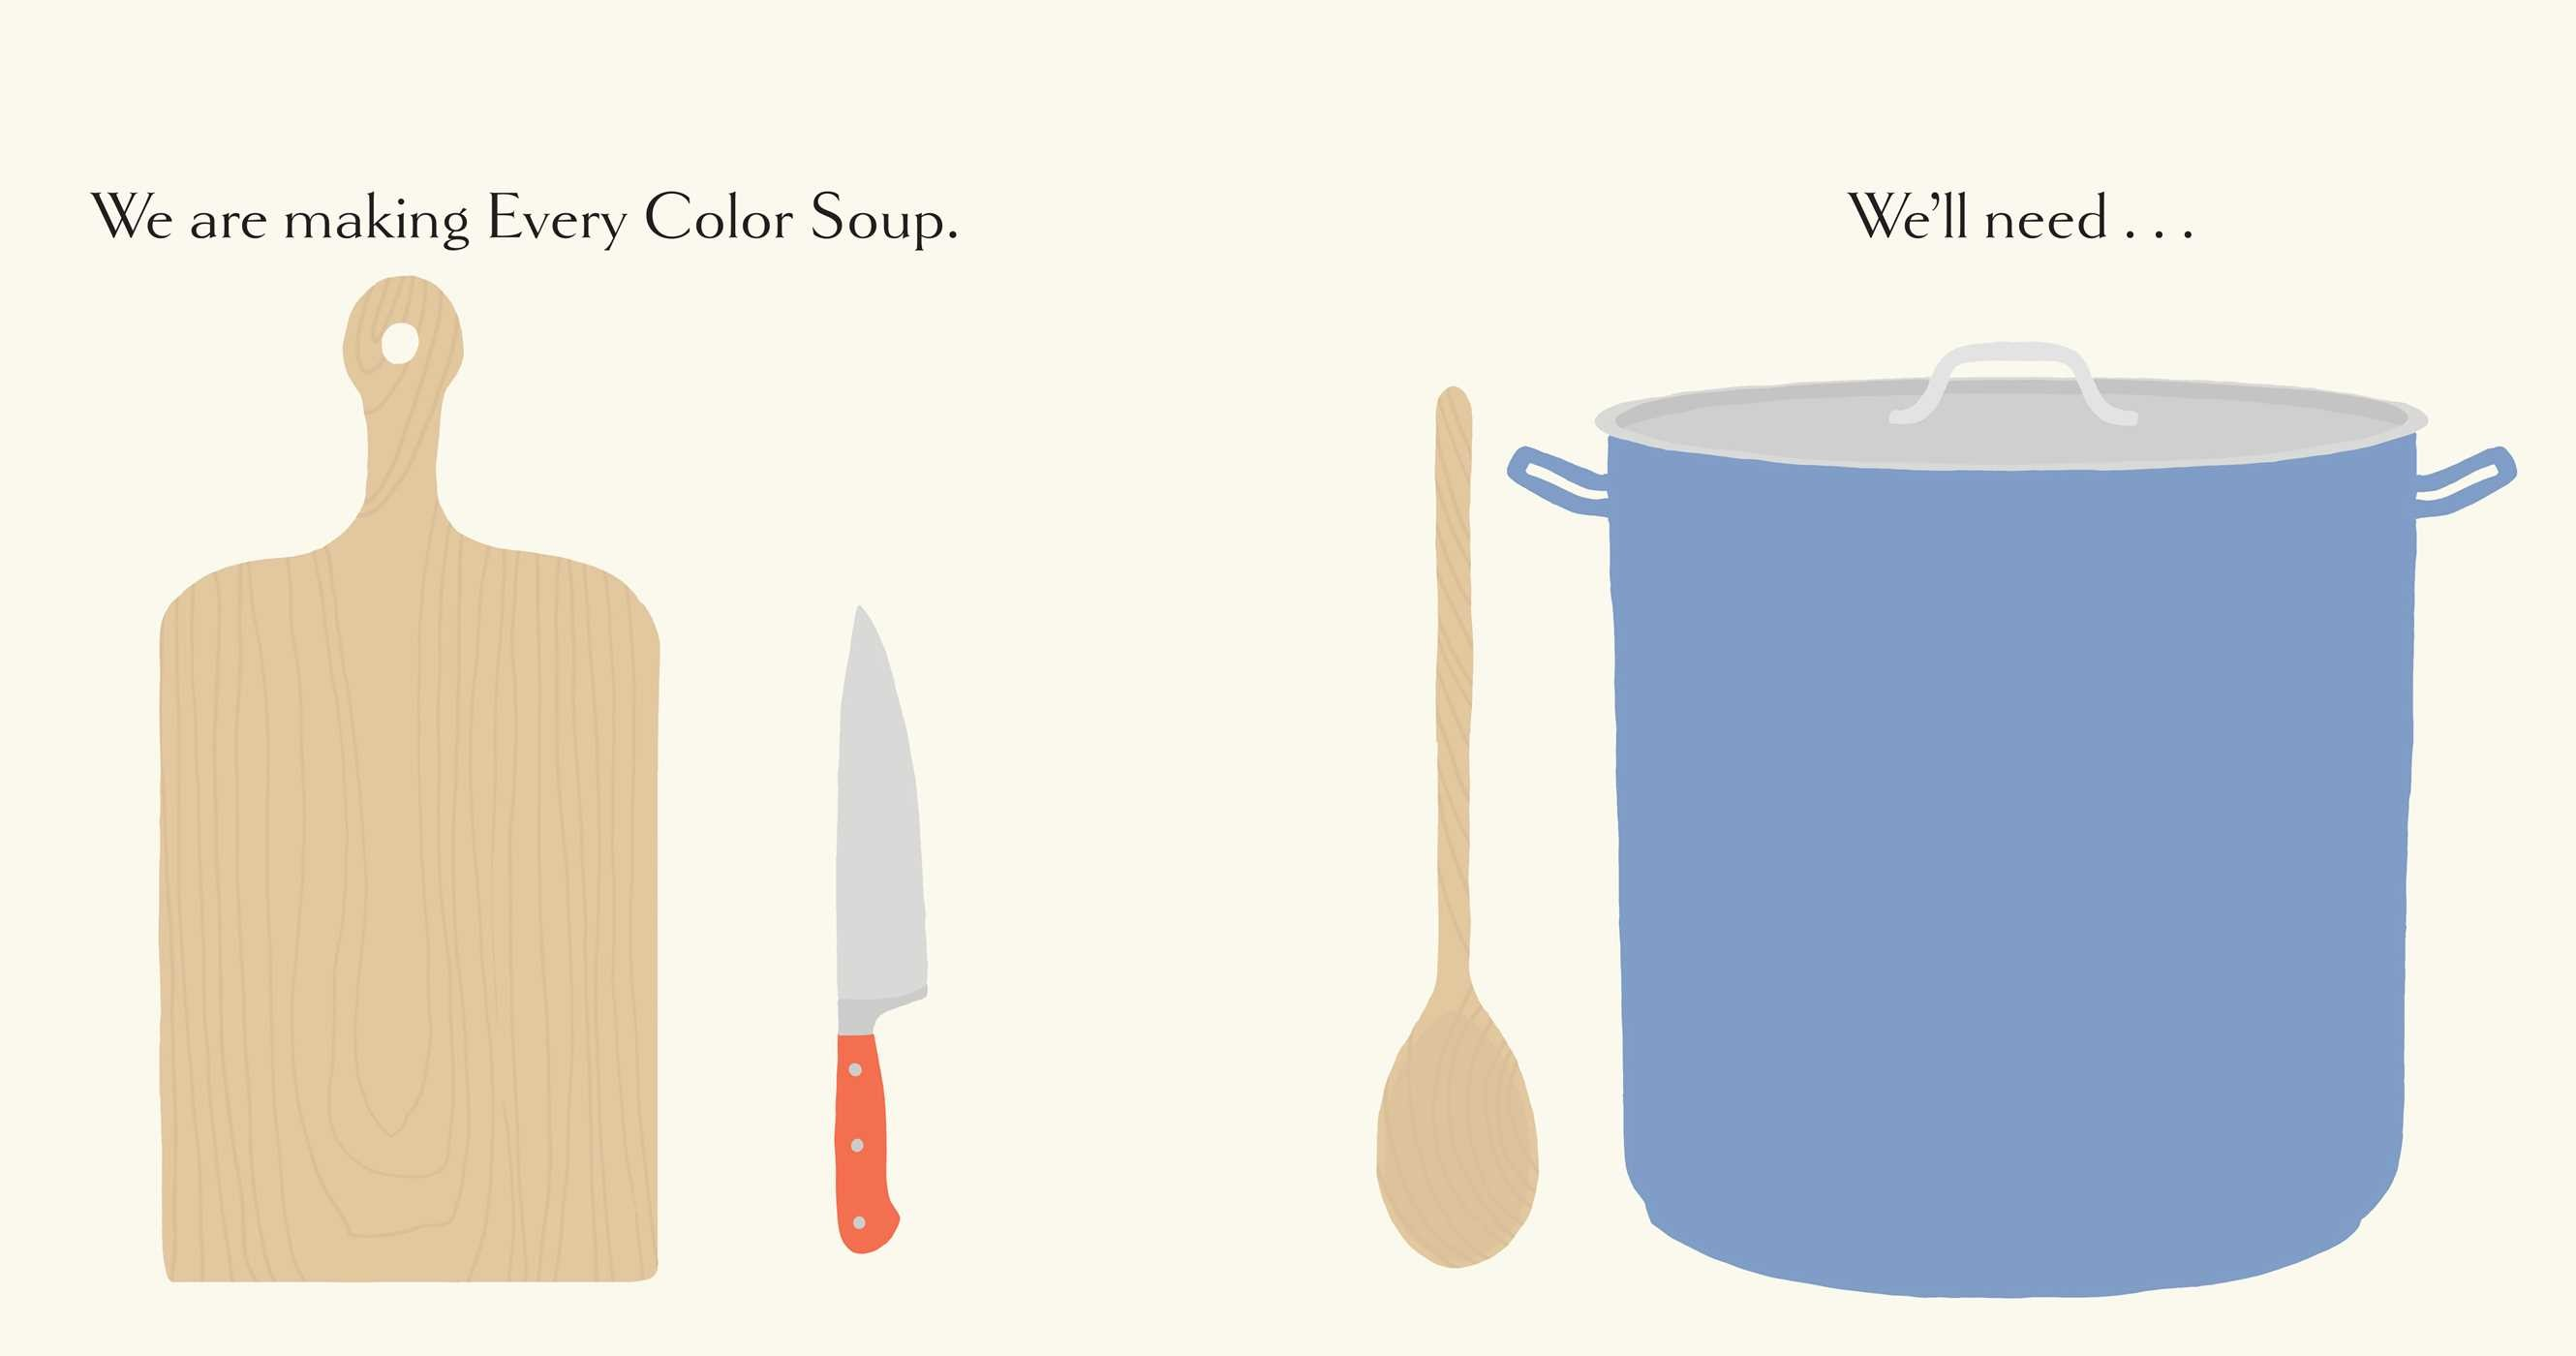 Every Color Soup Book by Jorey Hurley